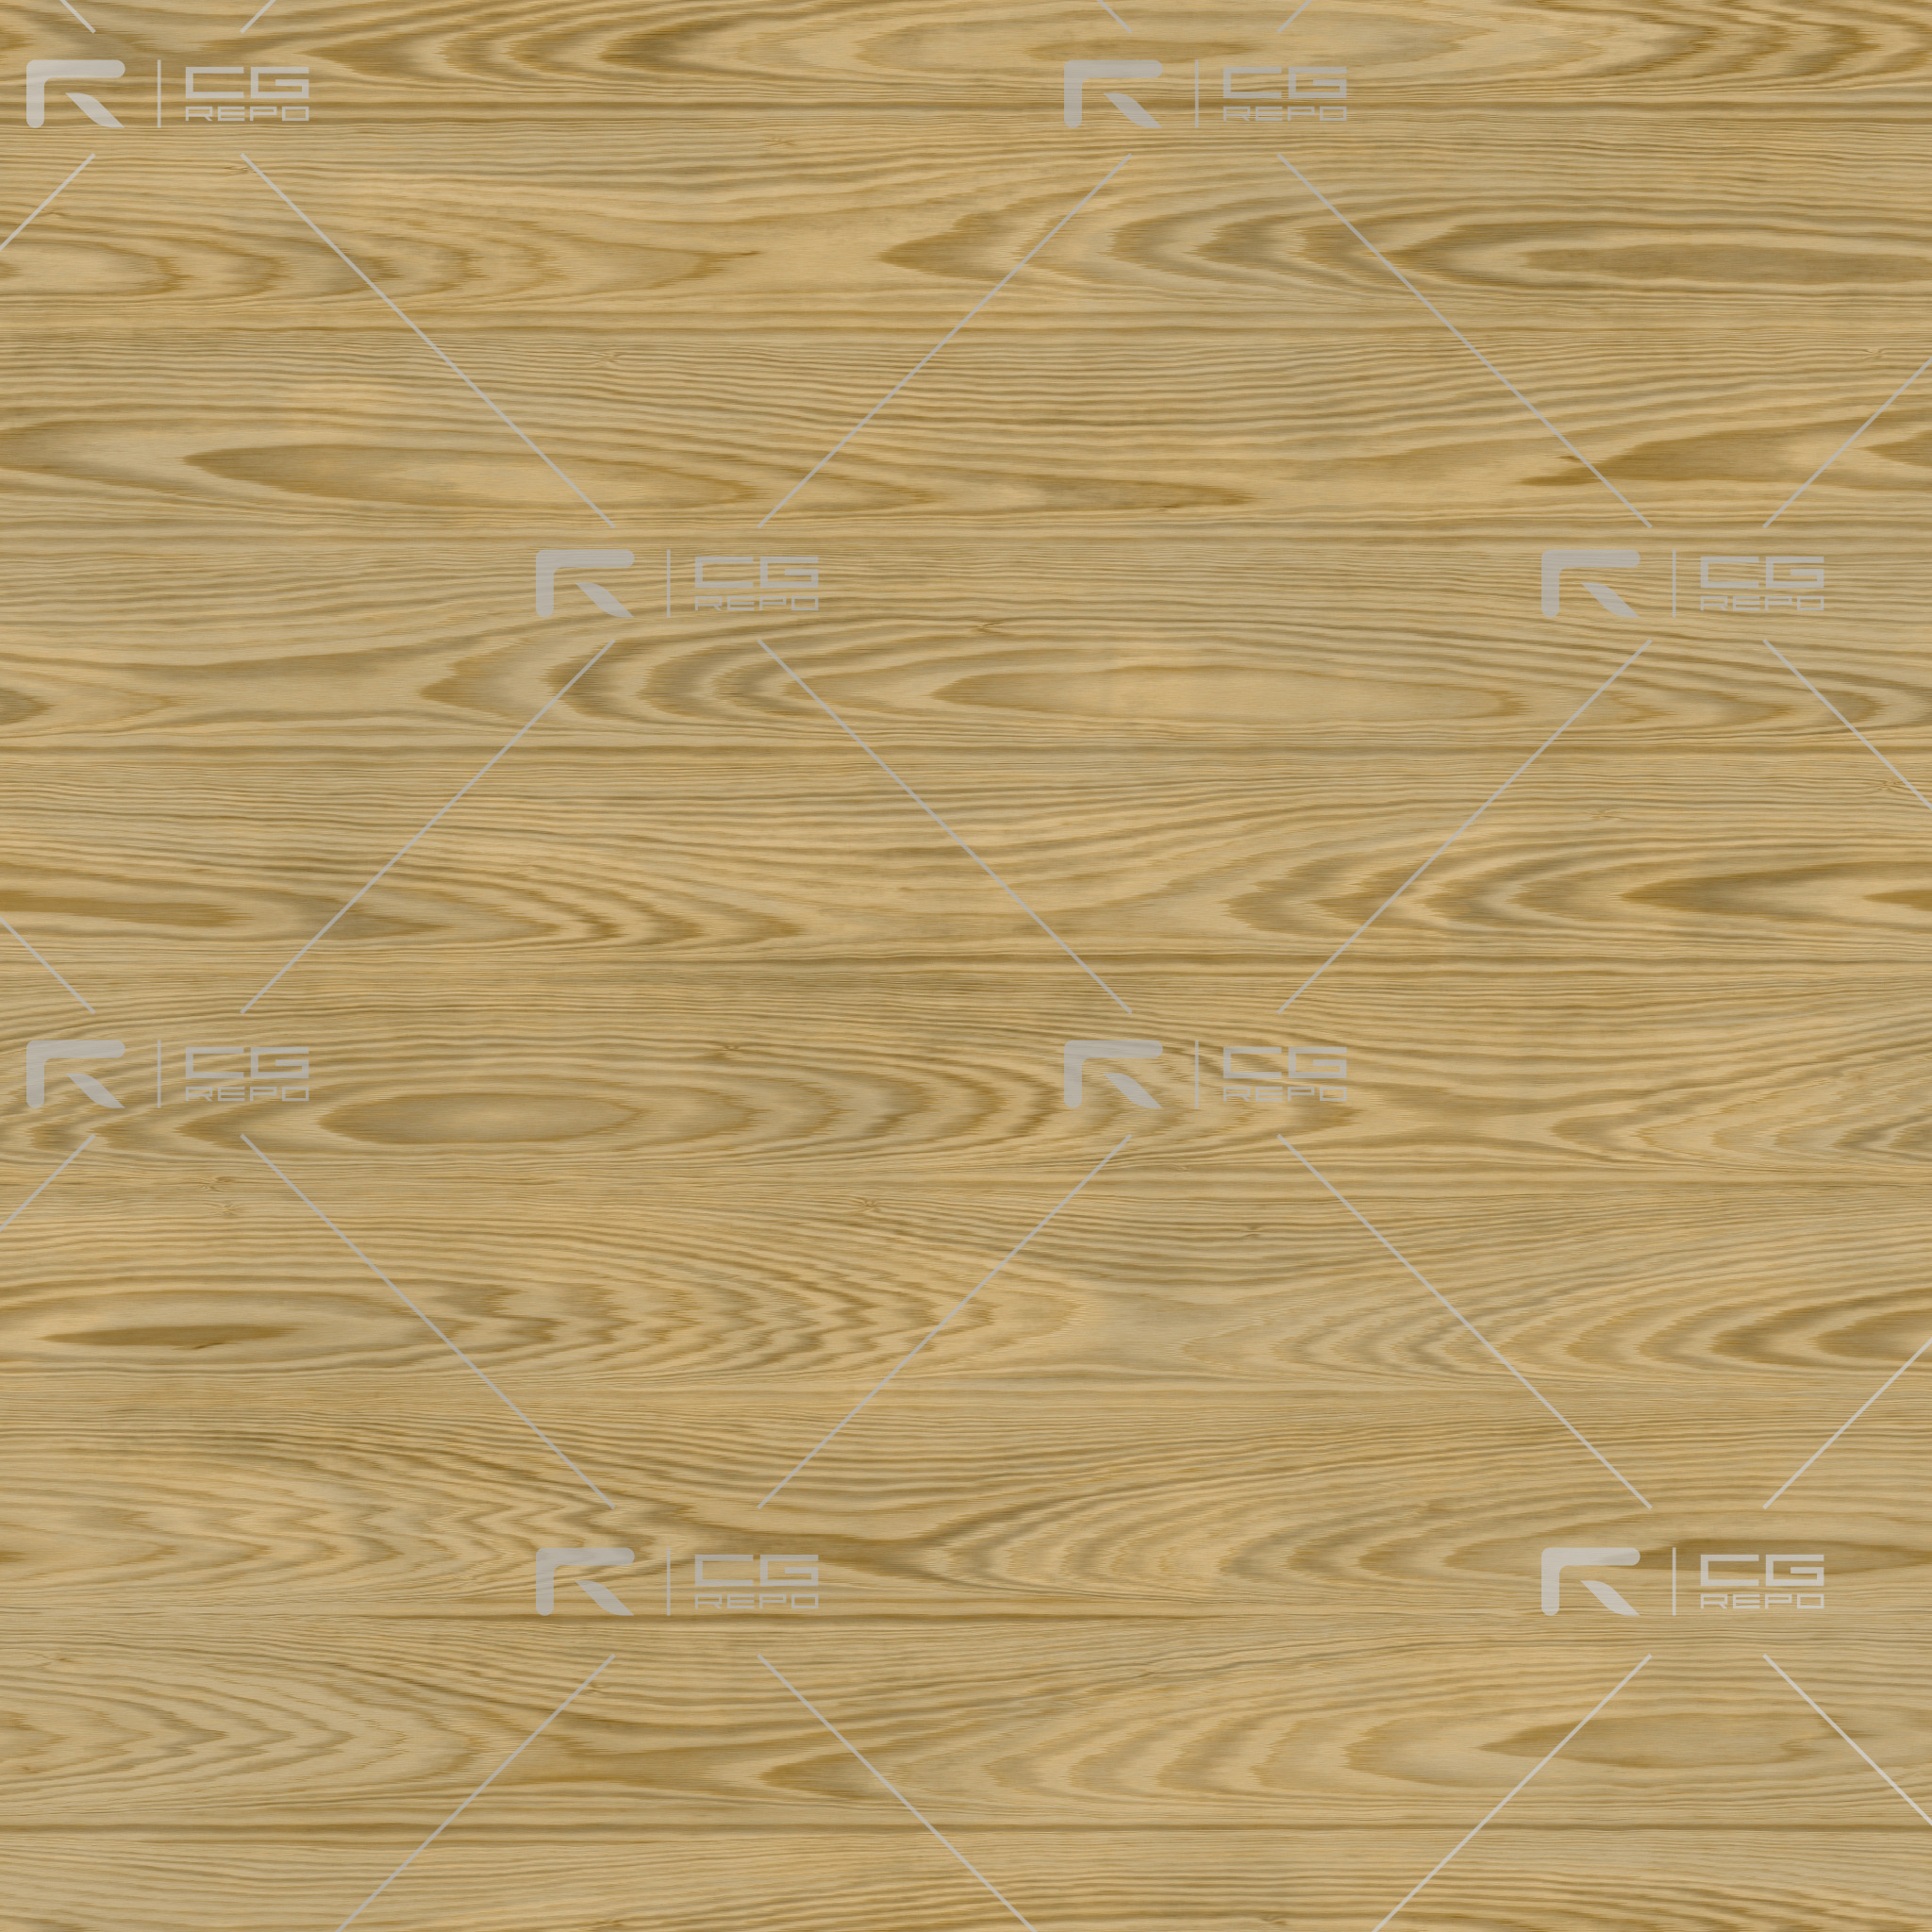 Oak - Champagne - Cathedral Shape BaseColor Texture